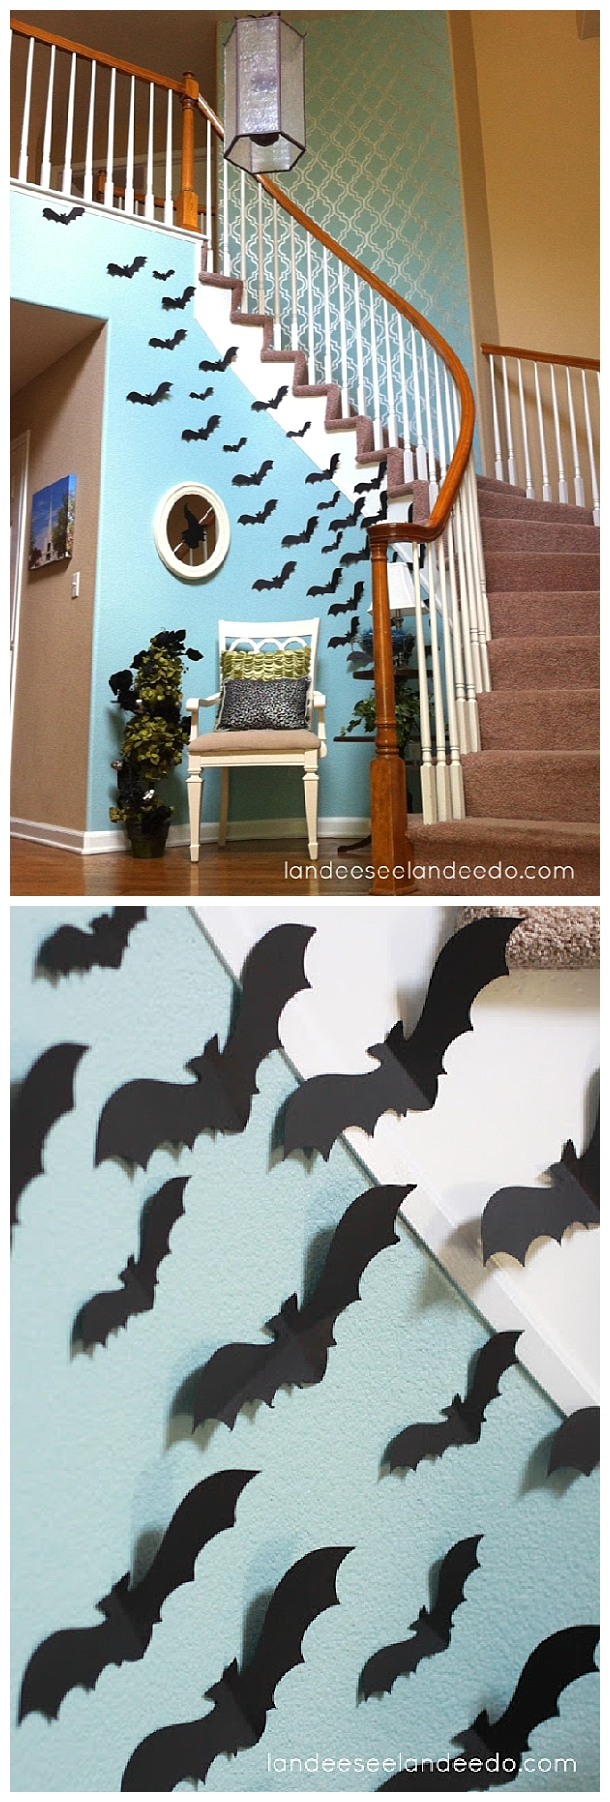 Fun idea for your entryway or front porch! Create a wall of BATS for your spooktacular Halloween Party lair! | Landeelu - Spooktacular Halloween DIYs, Crafts and Projects - The BEST Do it Yourself Halloween Decorations #halloween #halloweendecorations